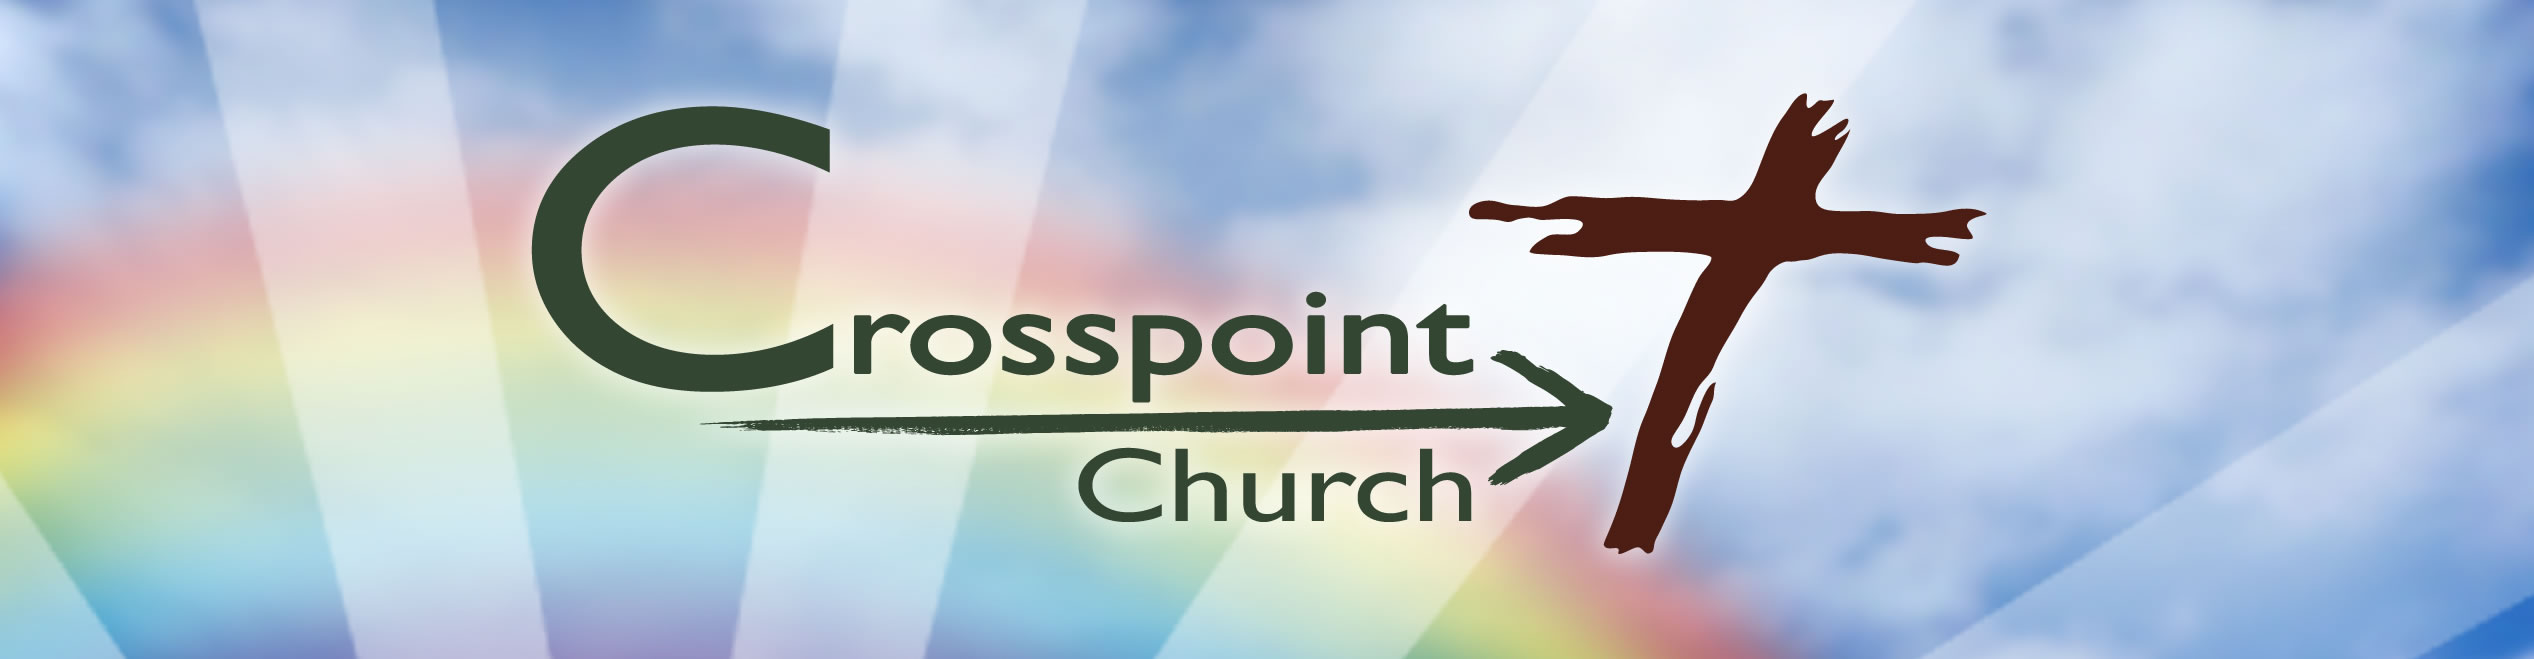 Crosspoint Church Online